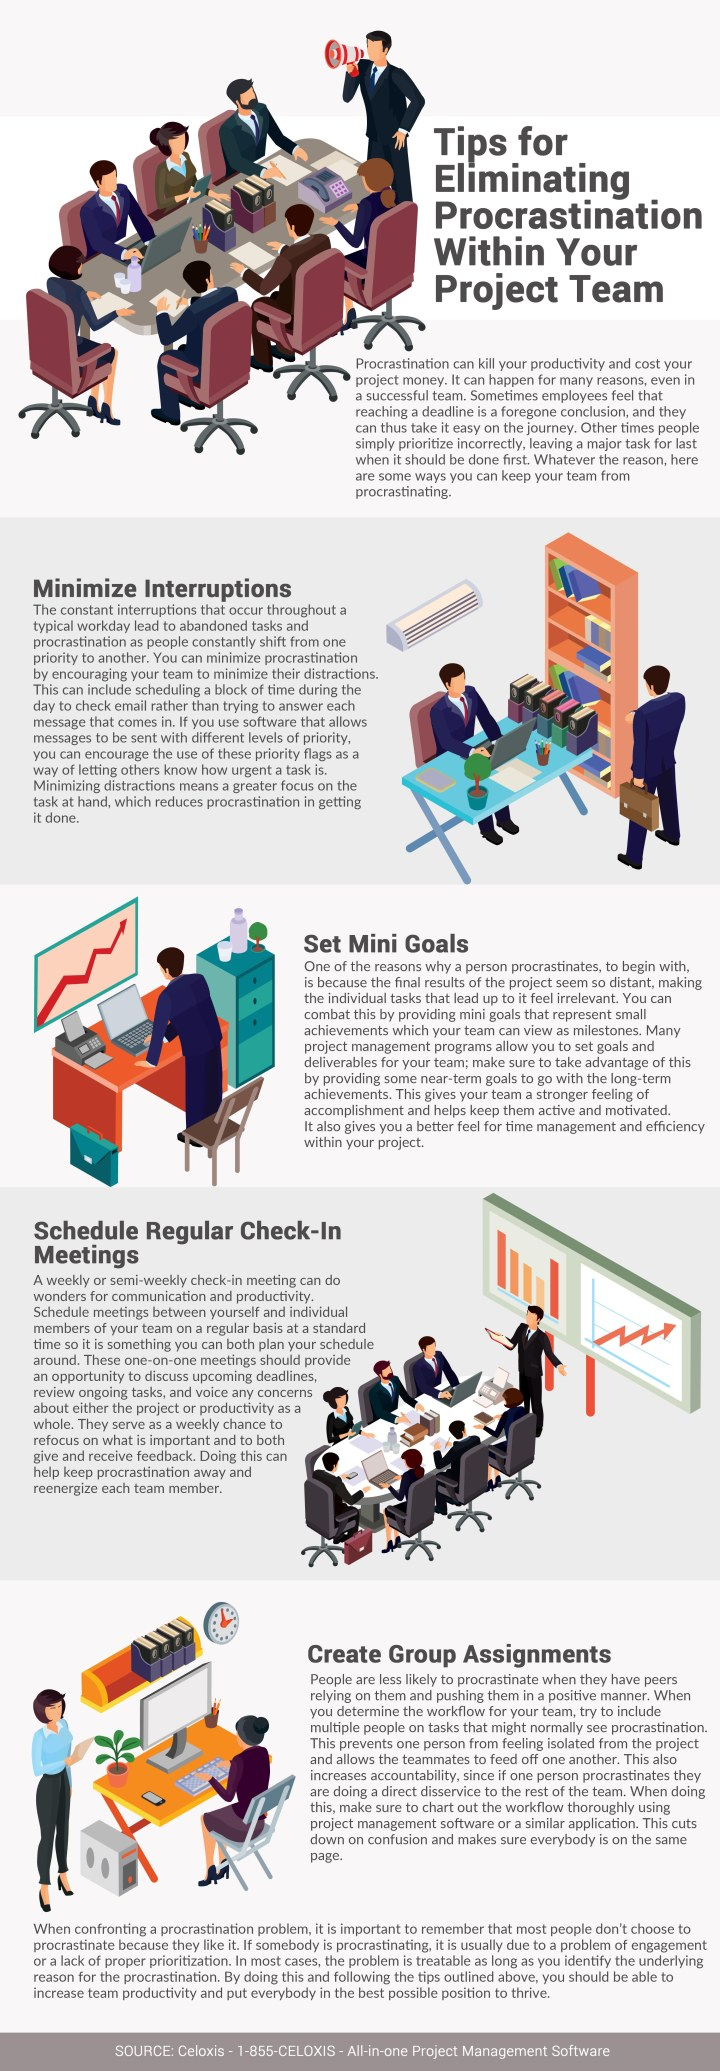 INFOGRAPHIC: Tips for Eliminating Procrastination Within Your Project team